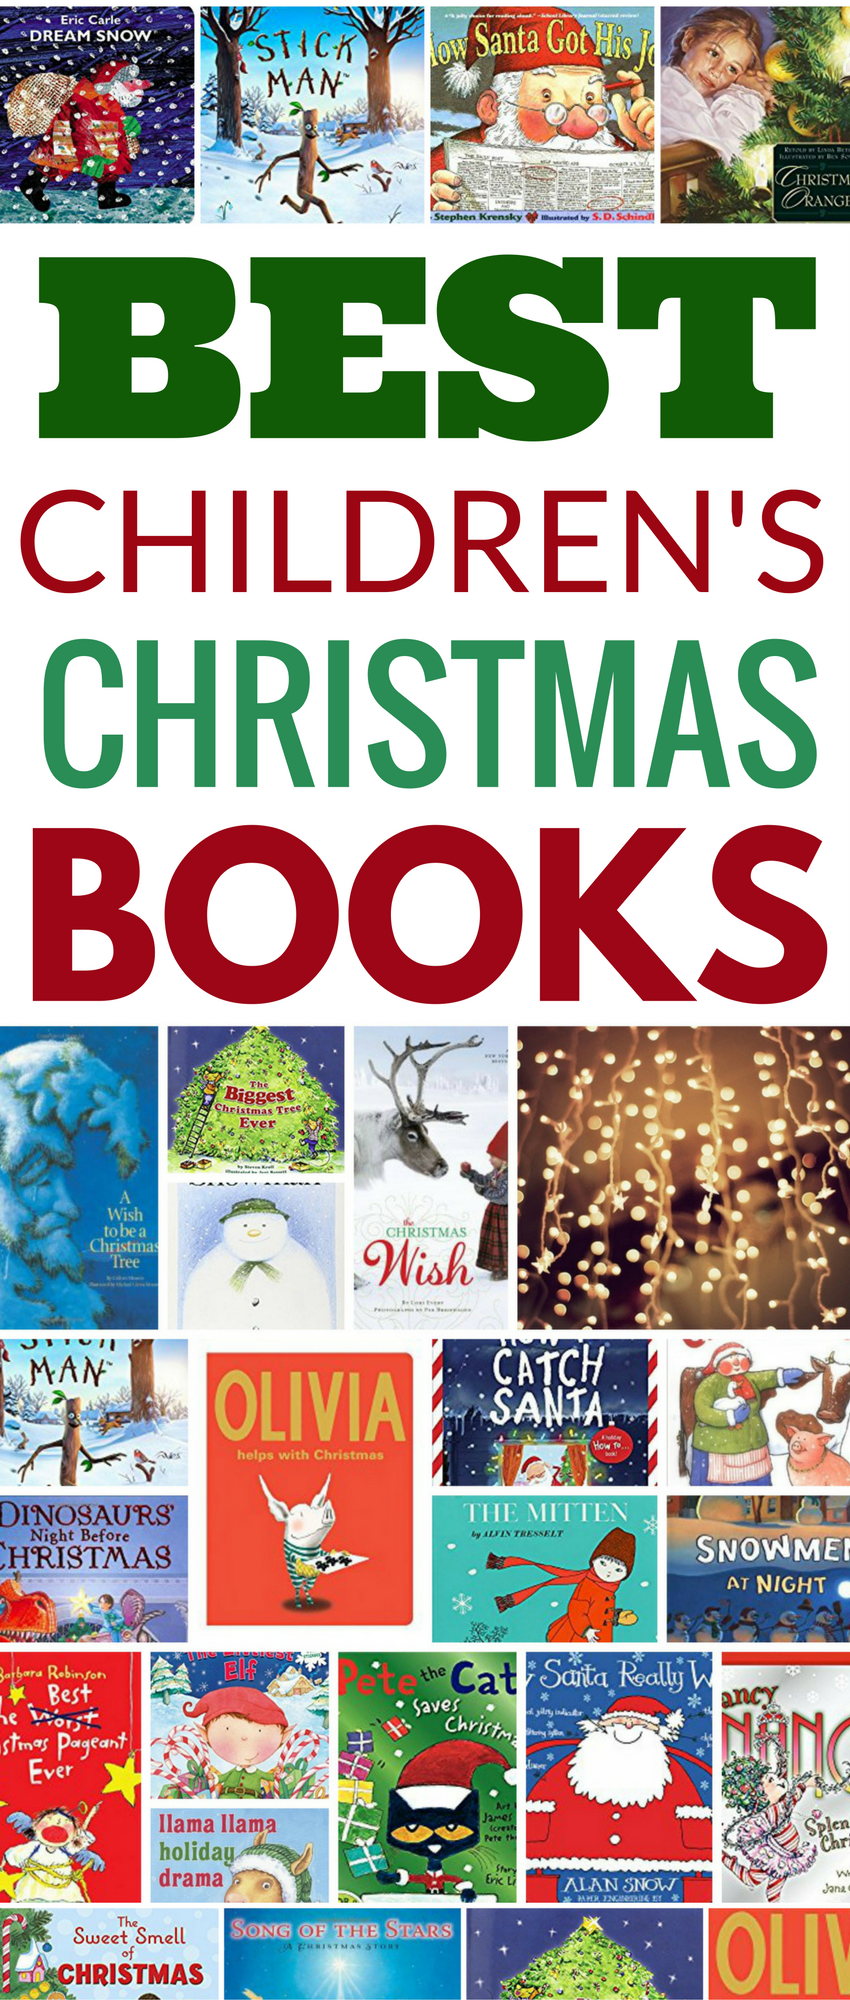 50 best childrens christmas books - Best Christmas Books For Kids